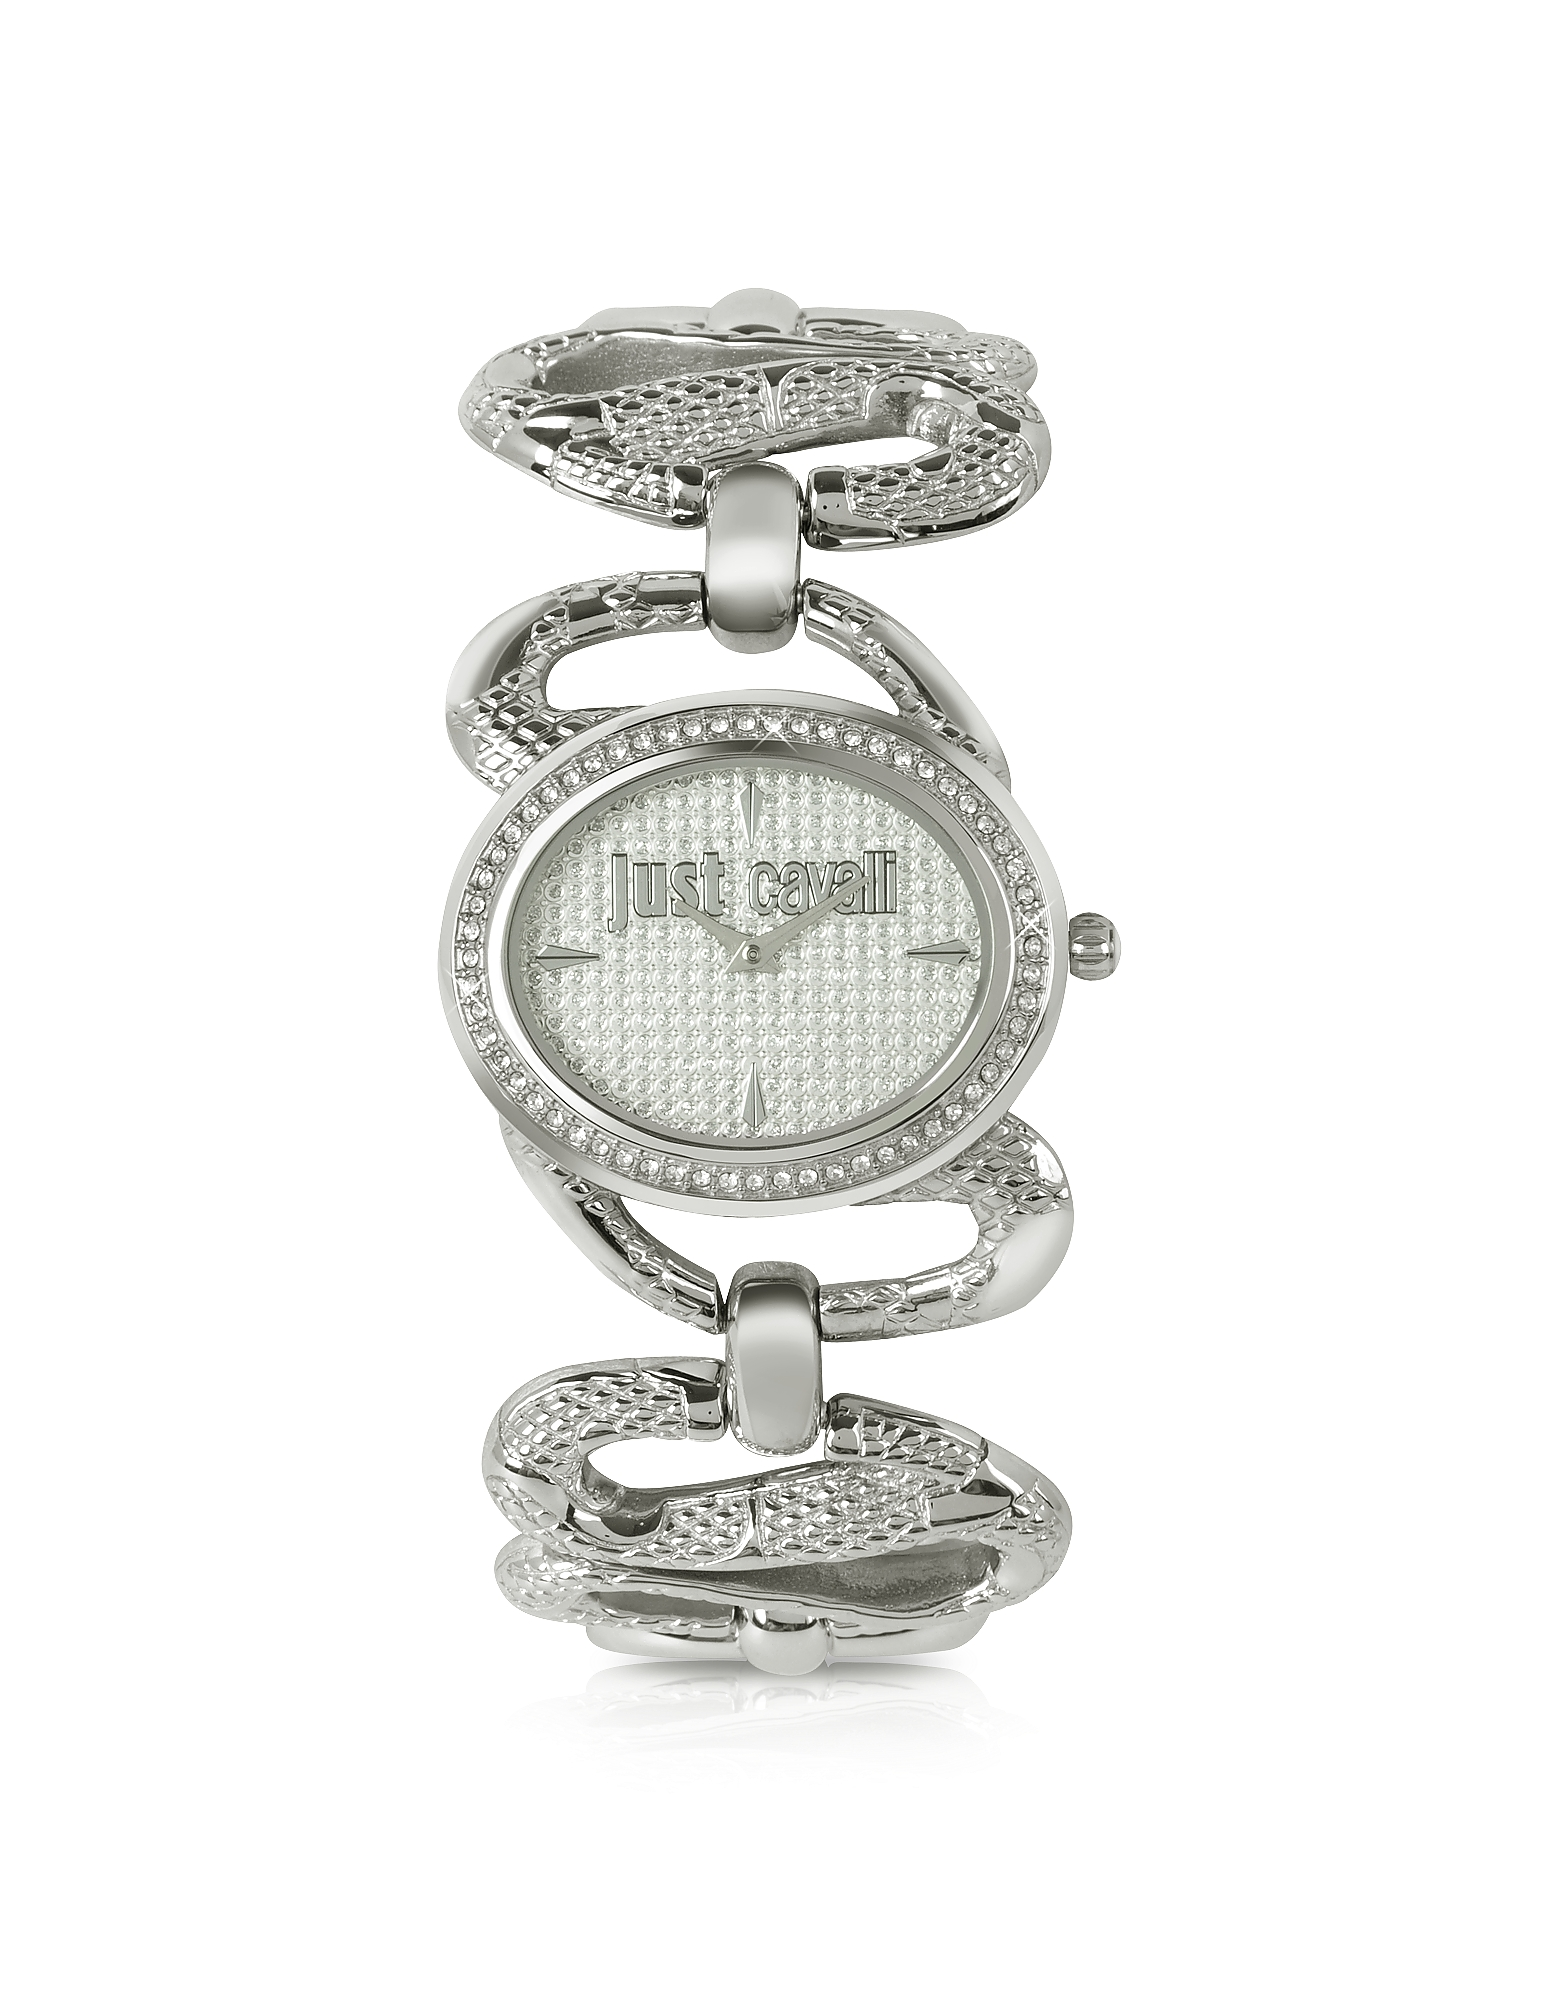 Just Cavalli Women's Watches, Sinuous - Silver Dial Bracelet Watch